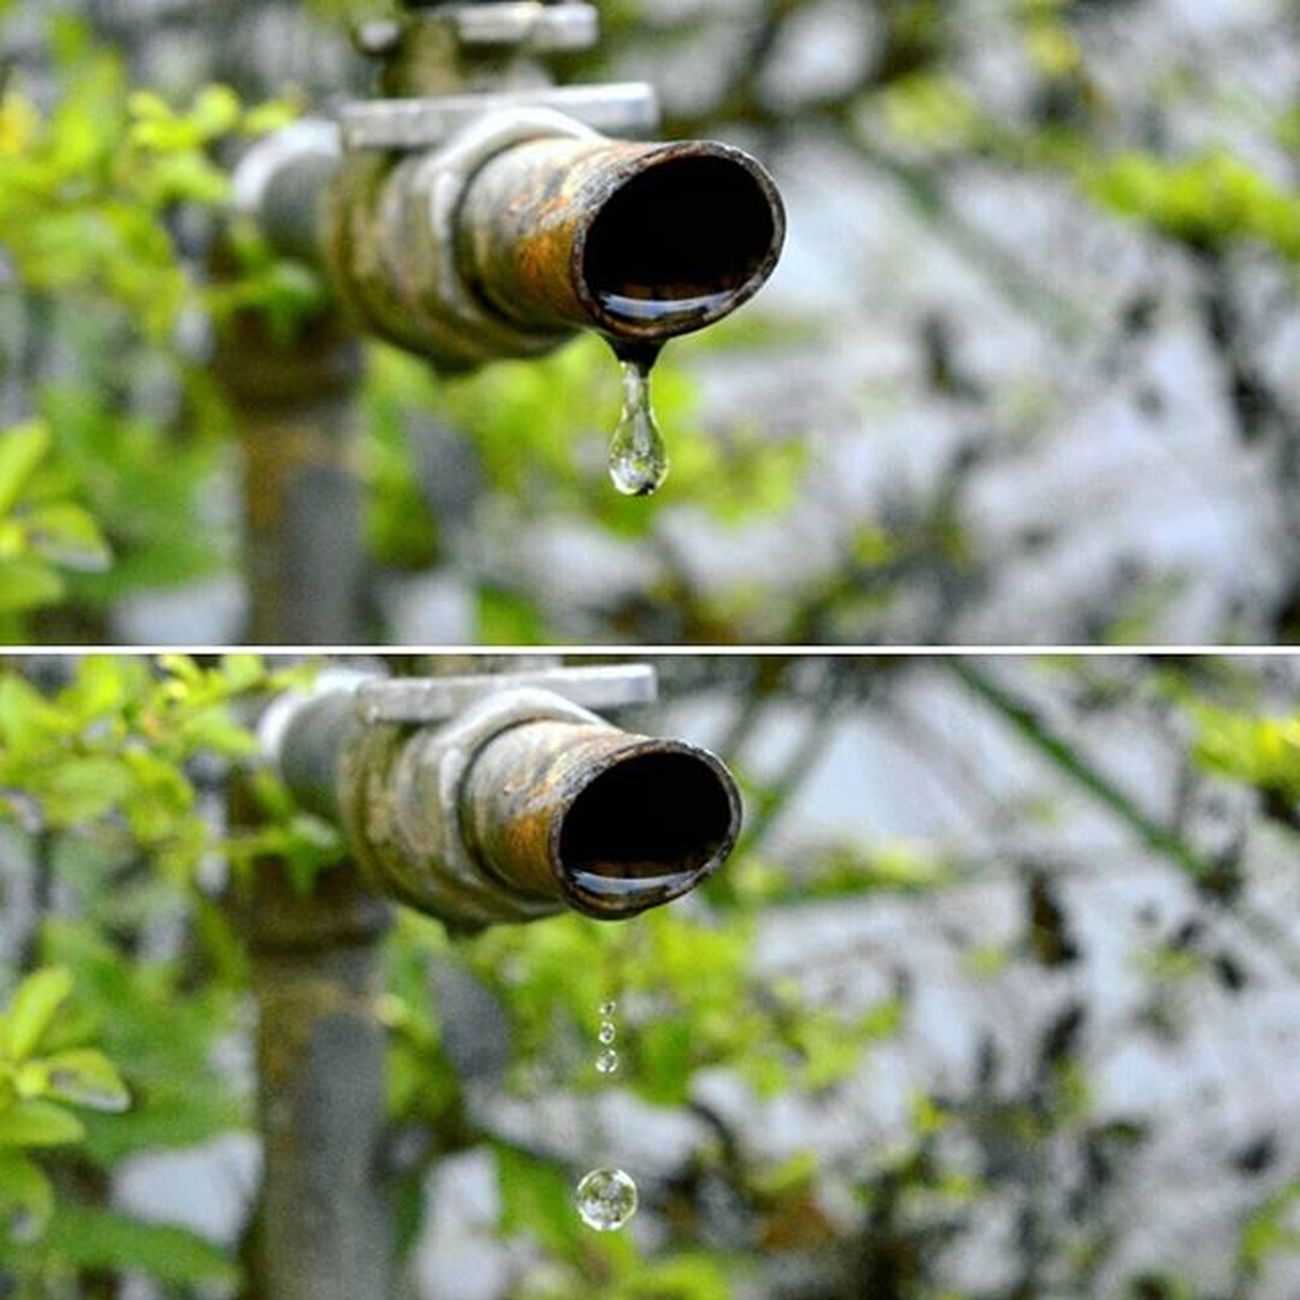 Photos Collage Waterdrops Stopmotion Highshutterspeed Nikon DSLR Follow Photooftheday Followme Focus Capture Moment